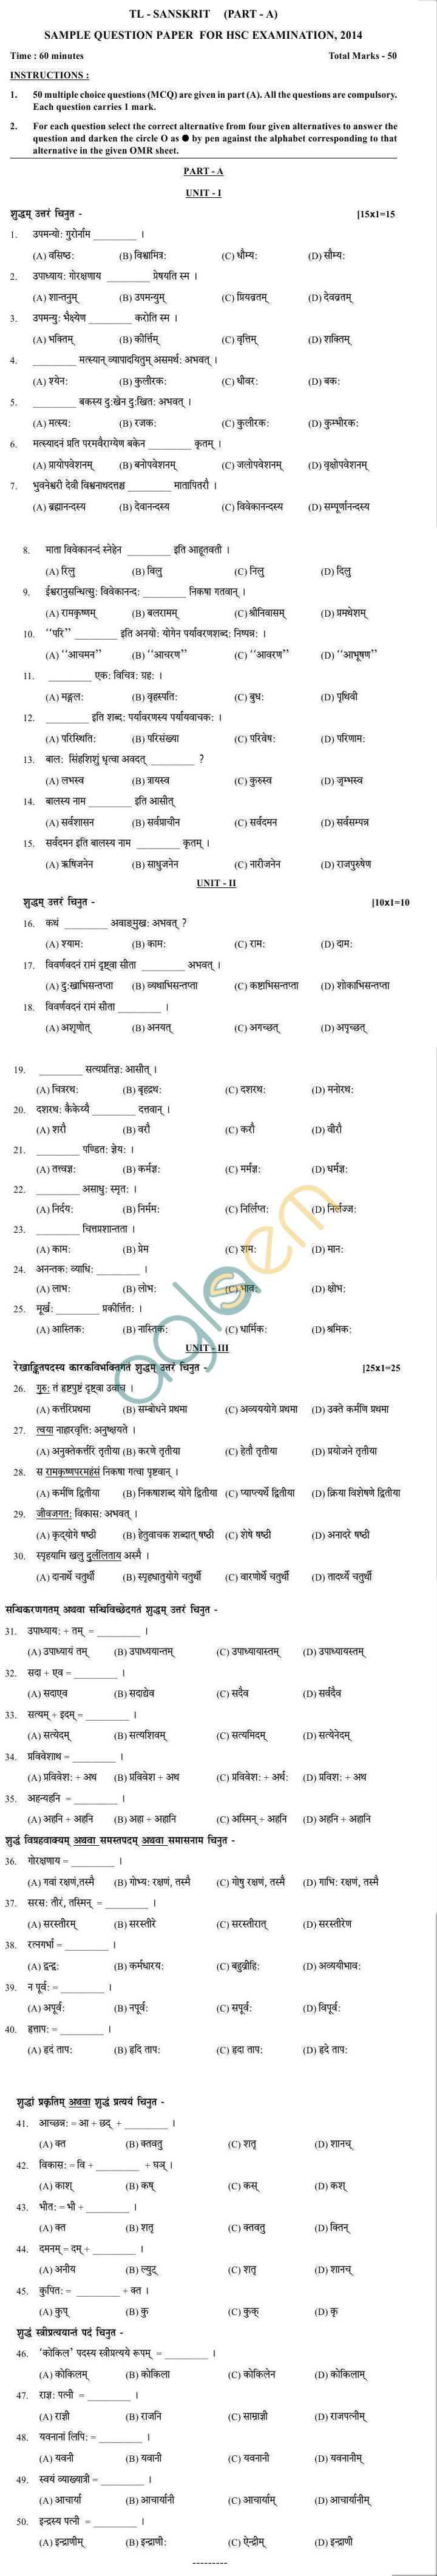 Odisha Board Sample Papers for HSC Exam 2014 - Sanskrit